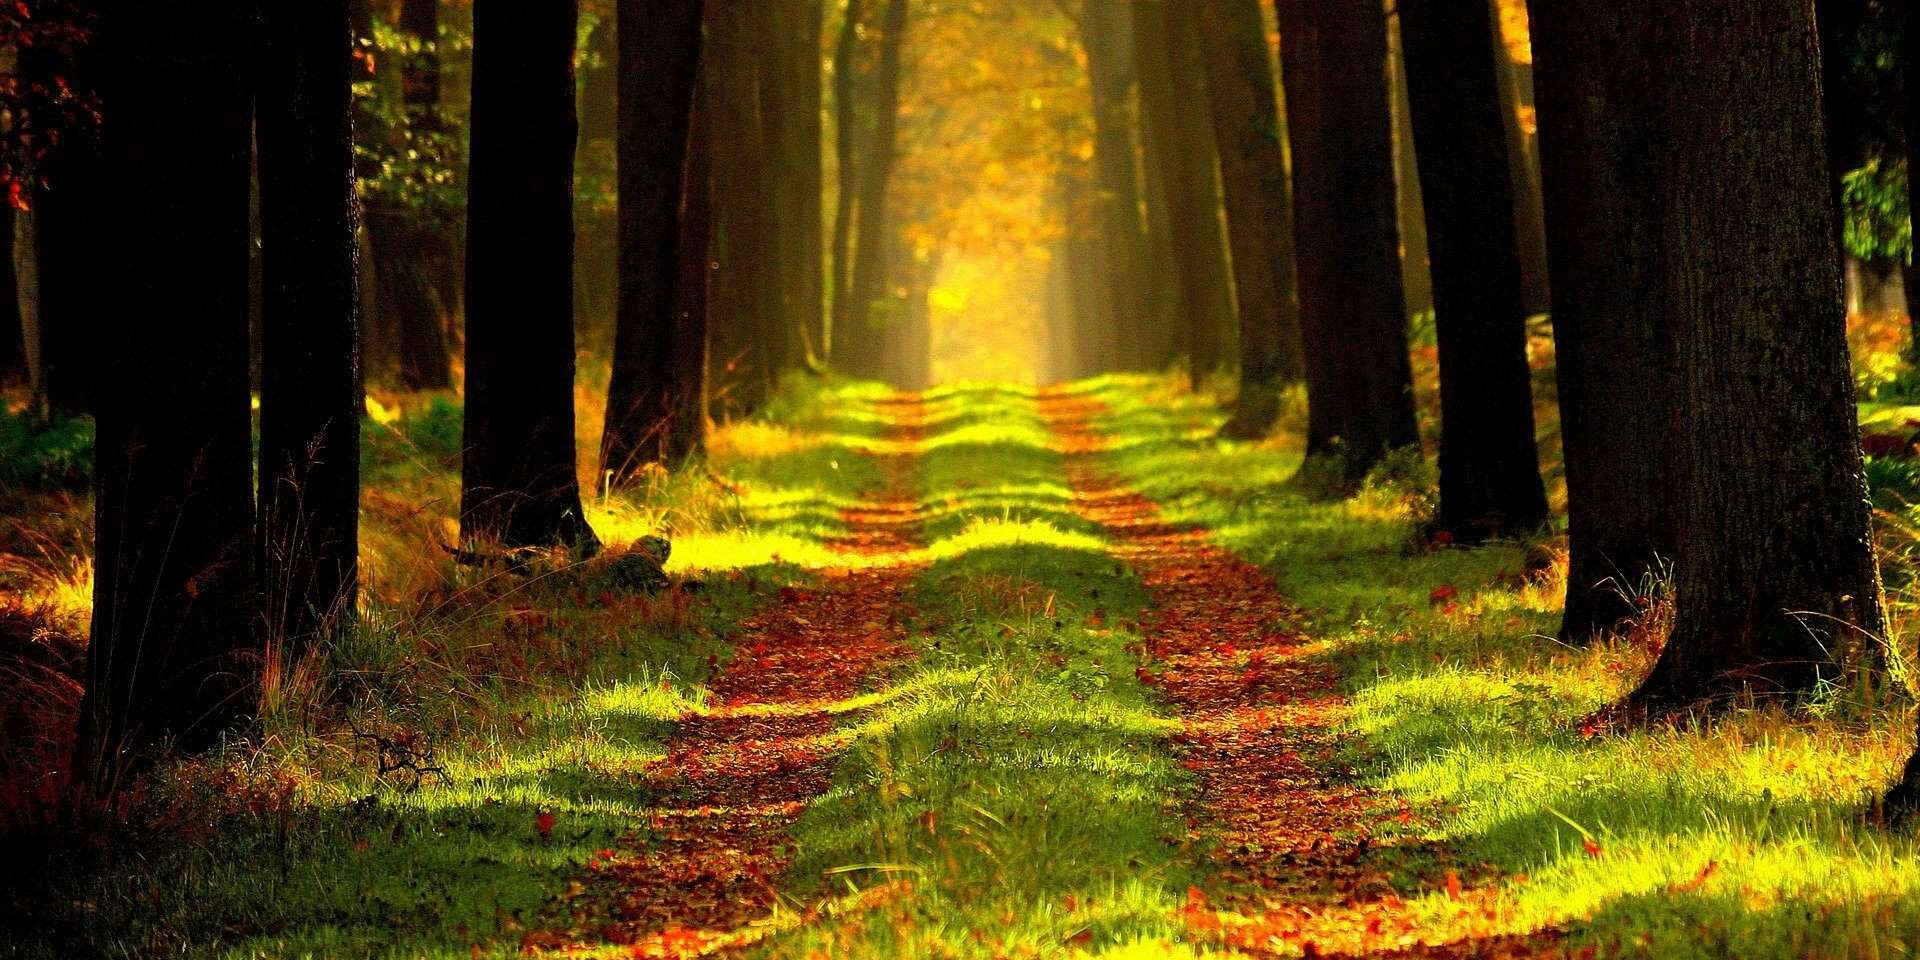 CK Health and Wellbeing - Hypothyroidism and Hashimotos Disease Line of Trees Forest